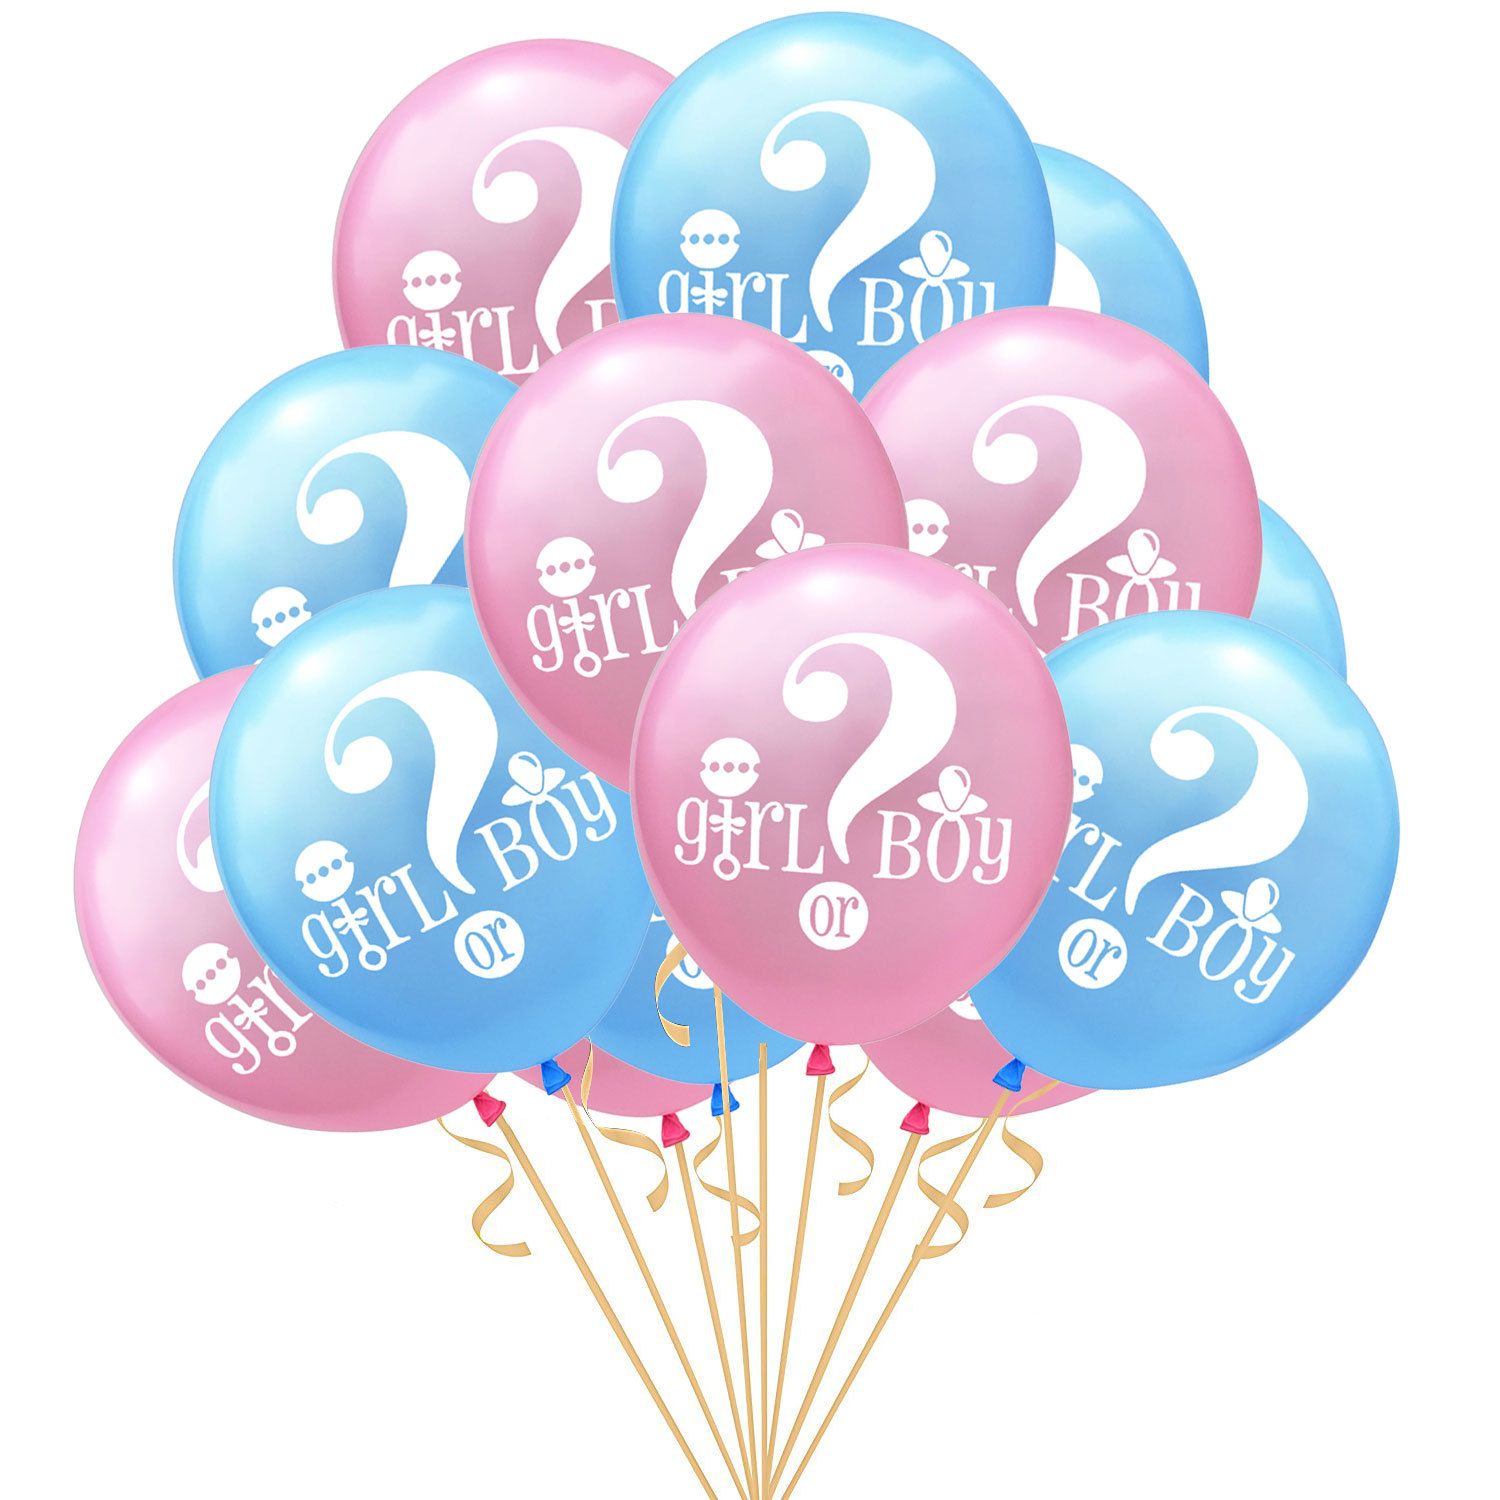 10pcs He or She Gender Reveal Latex Quality Balloons Wedding Party Decors Hot